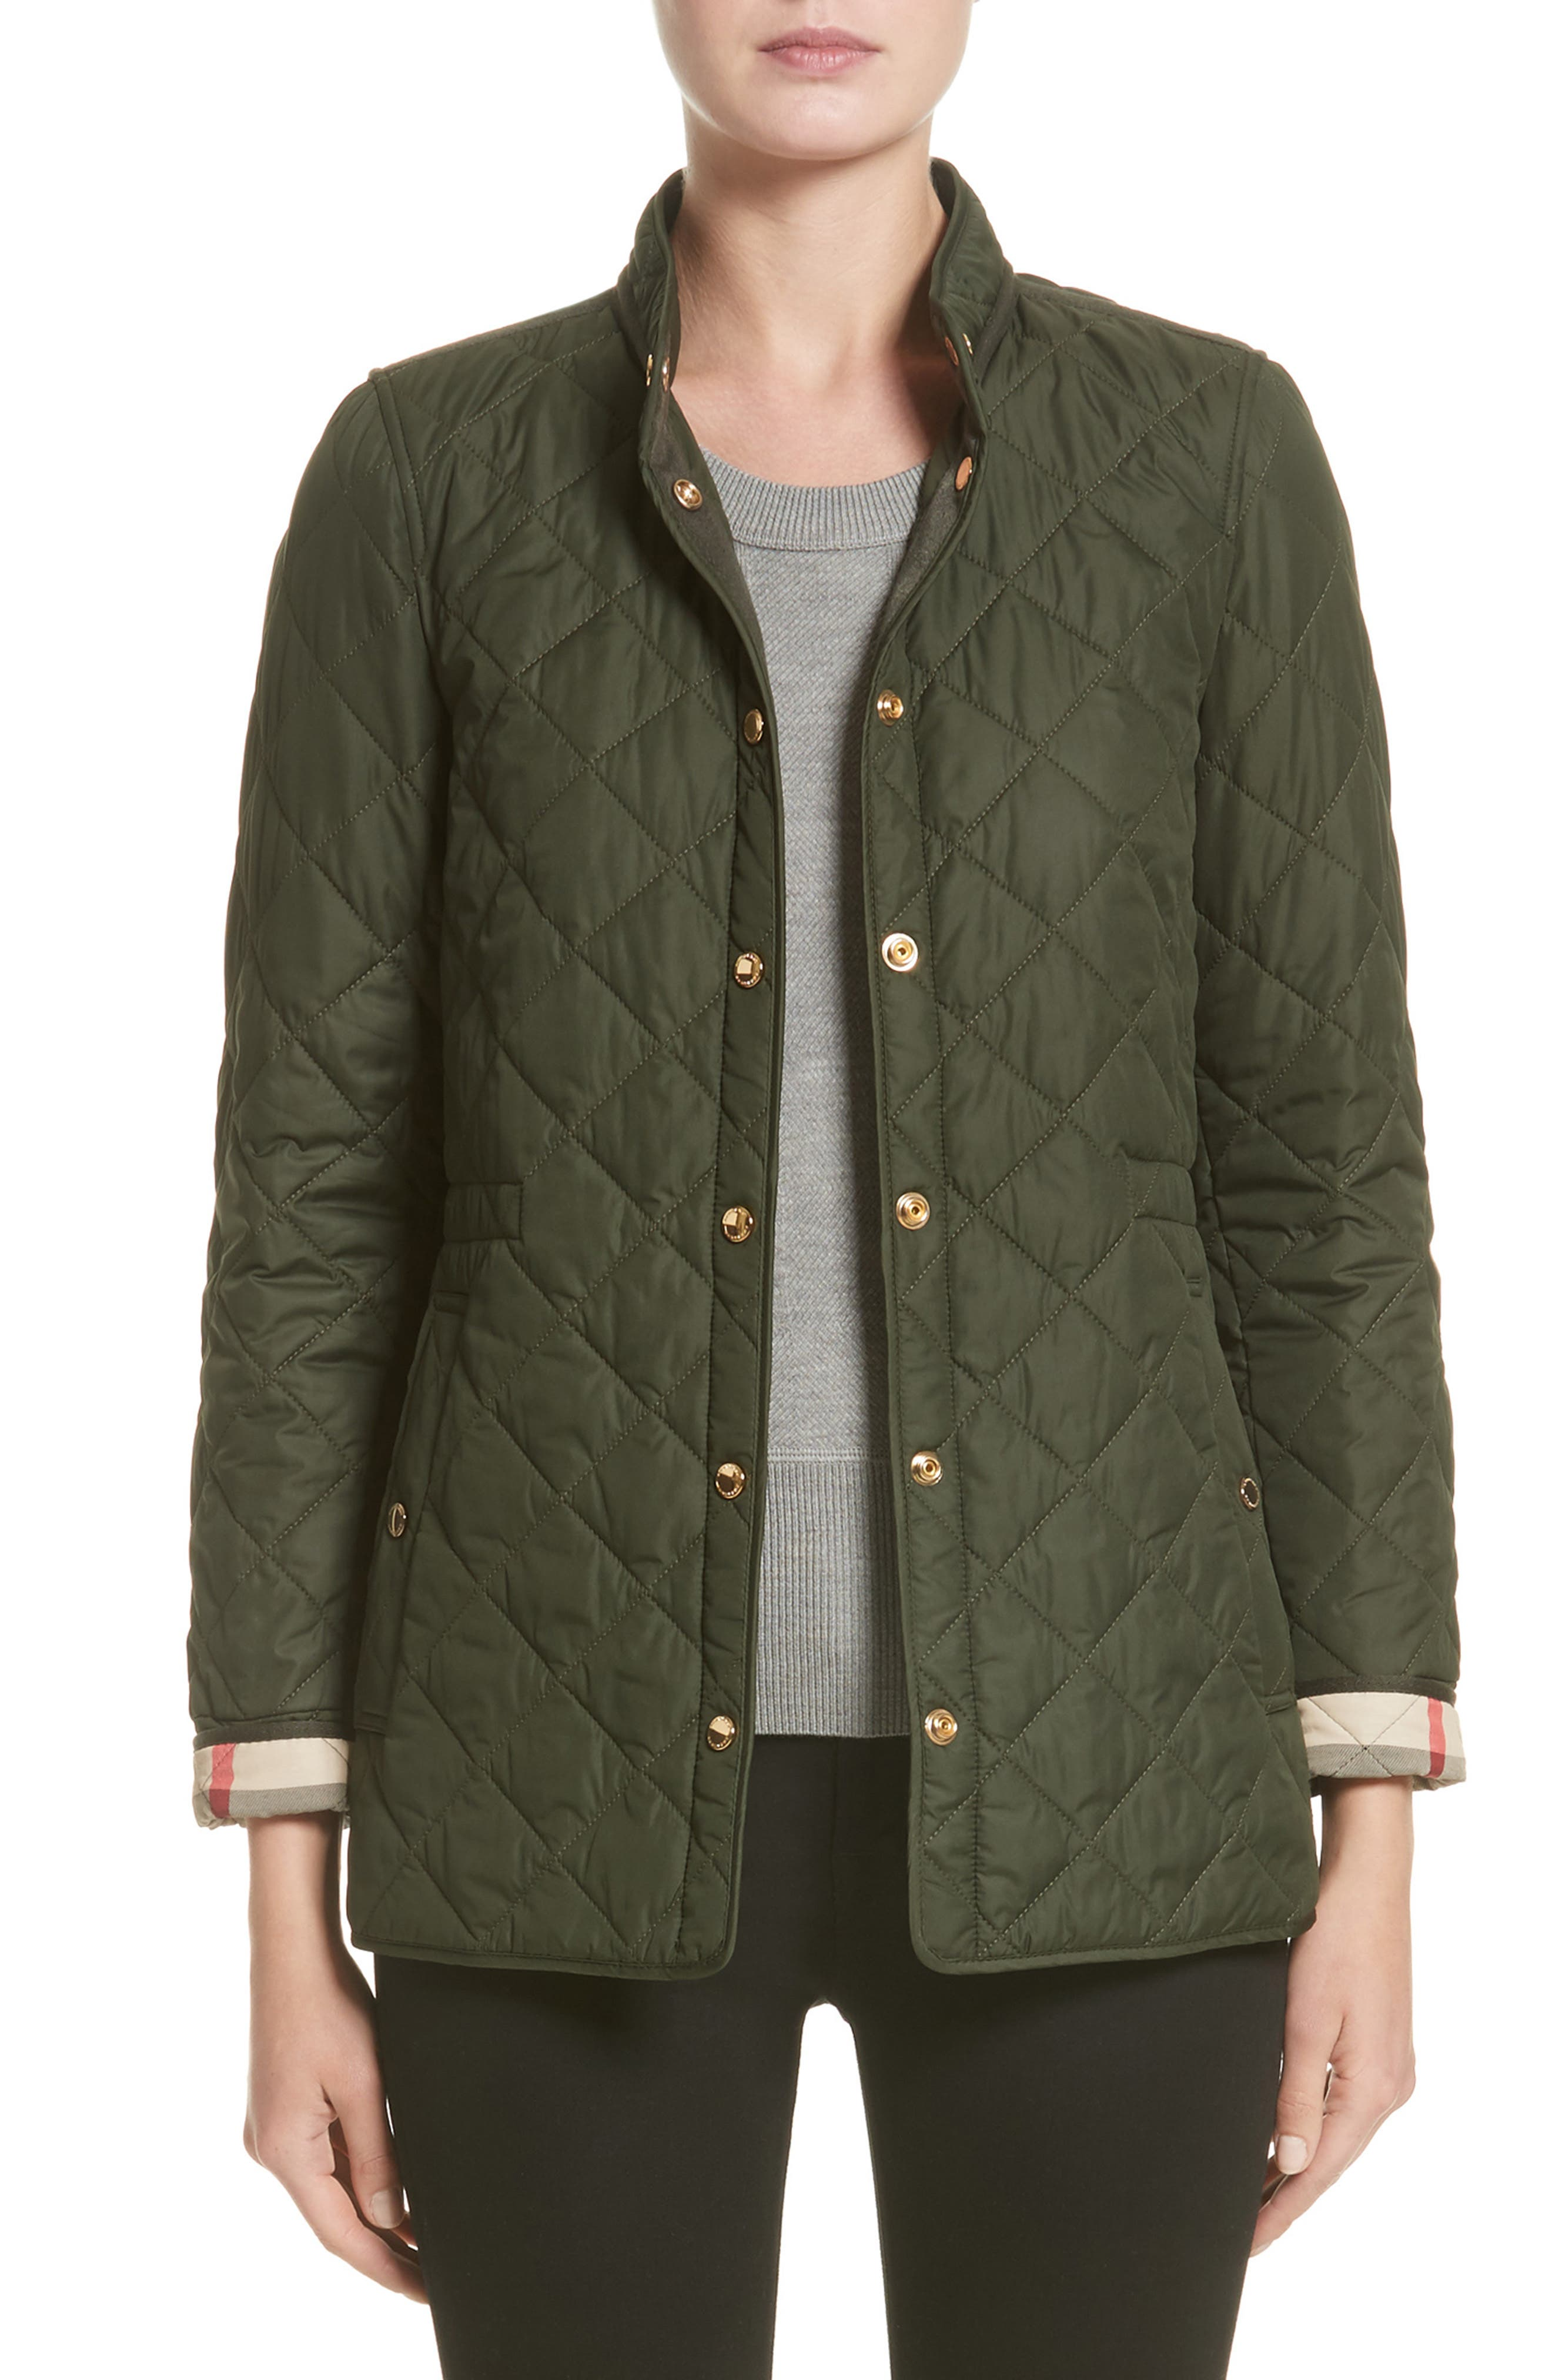 Pensham Quilted Jacket,                         Main,                         color, Military Green